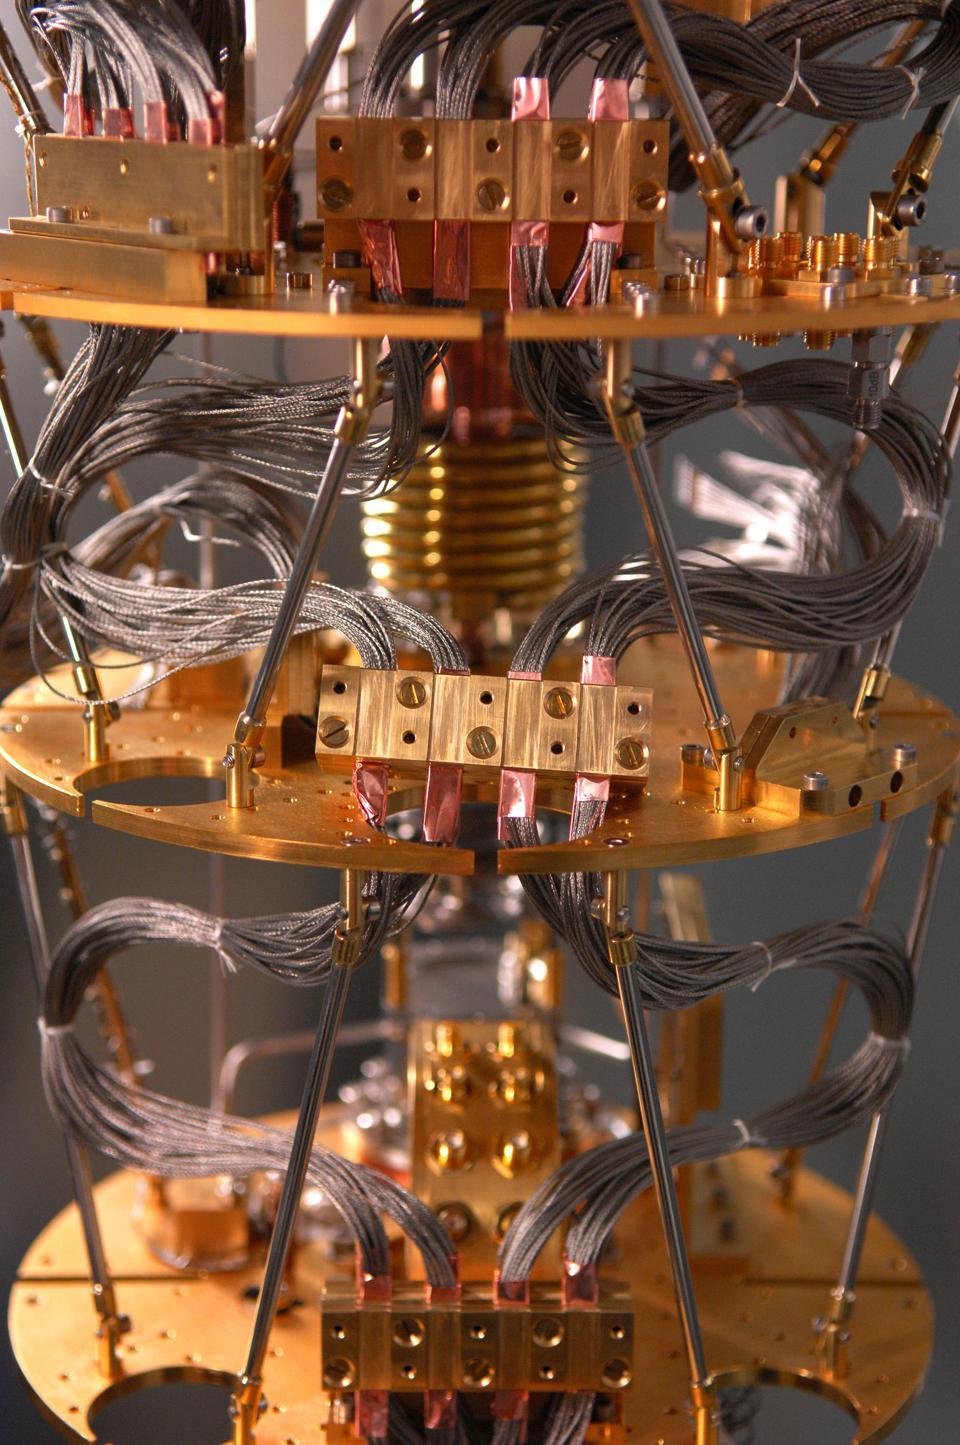 A quantum computer getting wired up